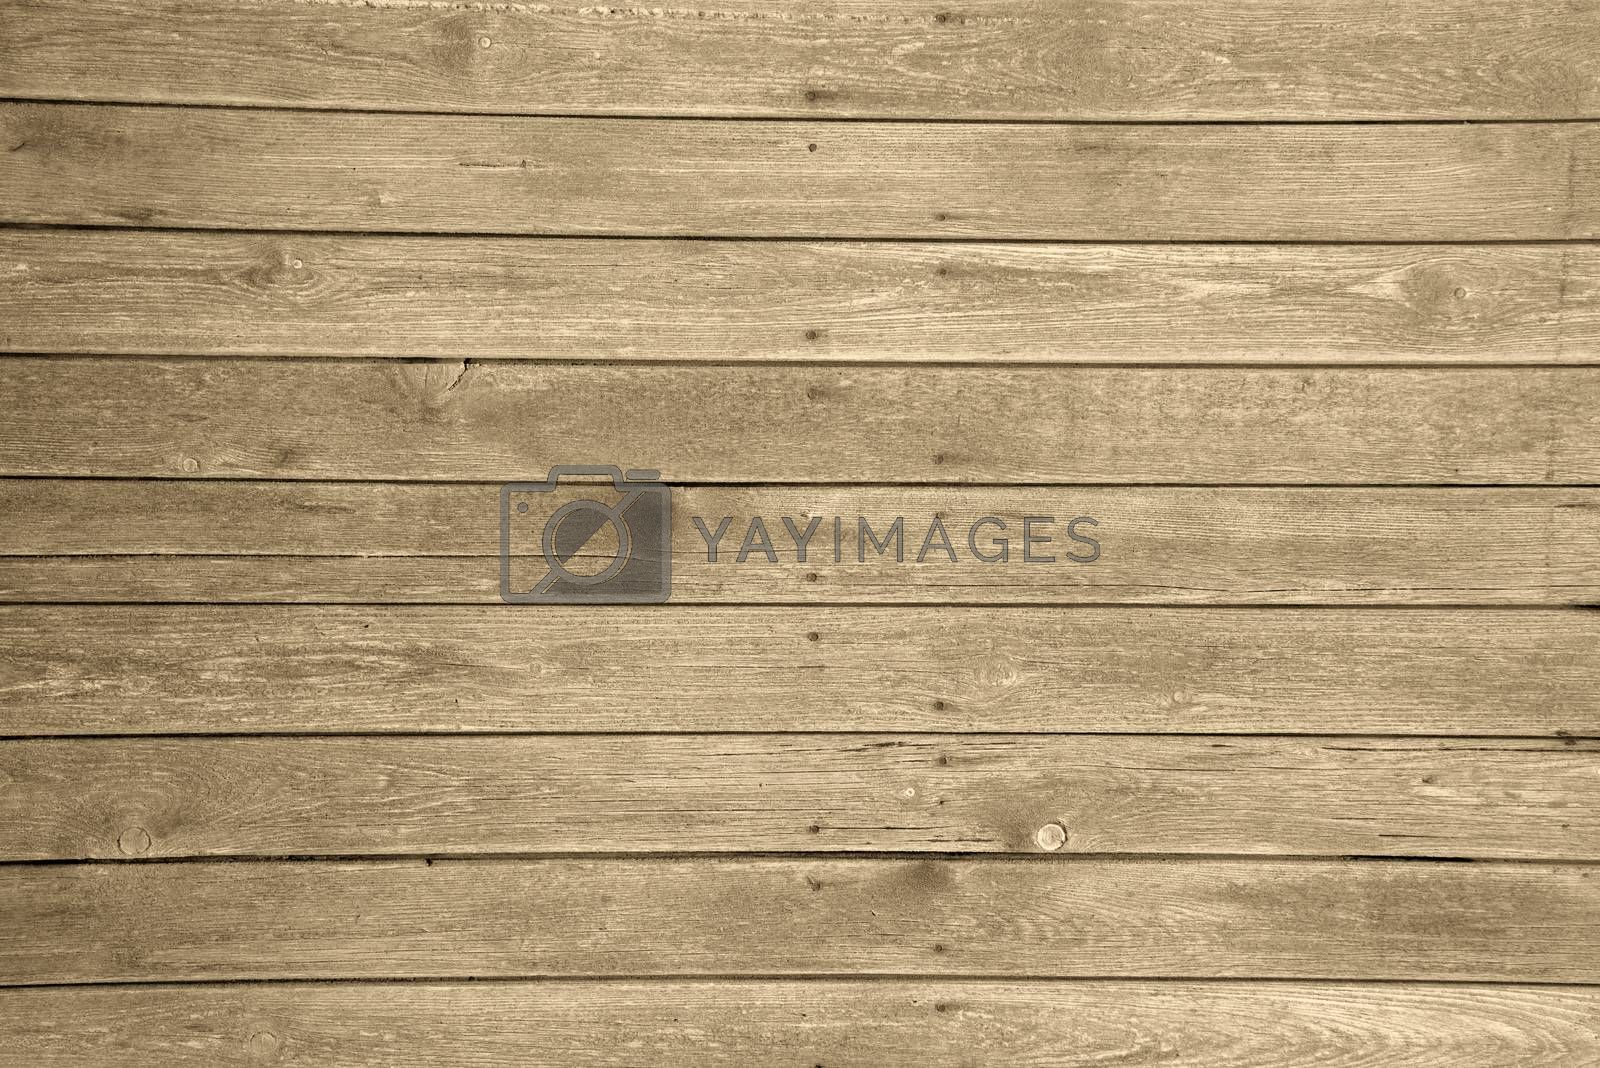 Old wood texture with natural patterns usefull as a background for your web or graphic design.